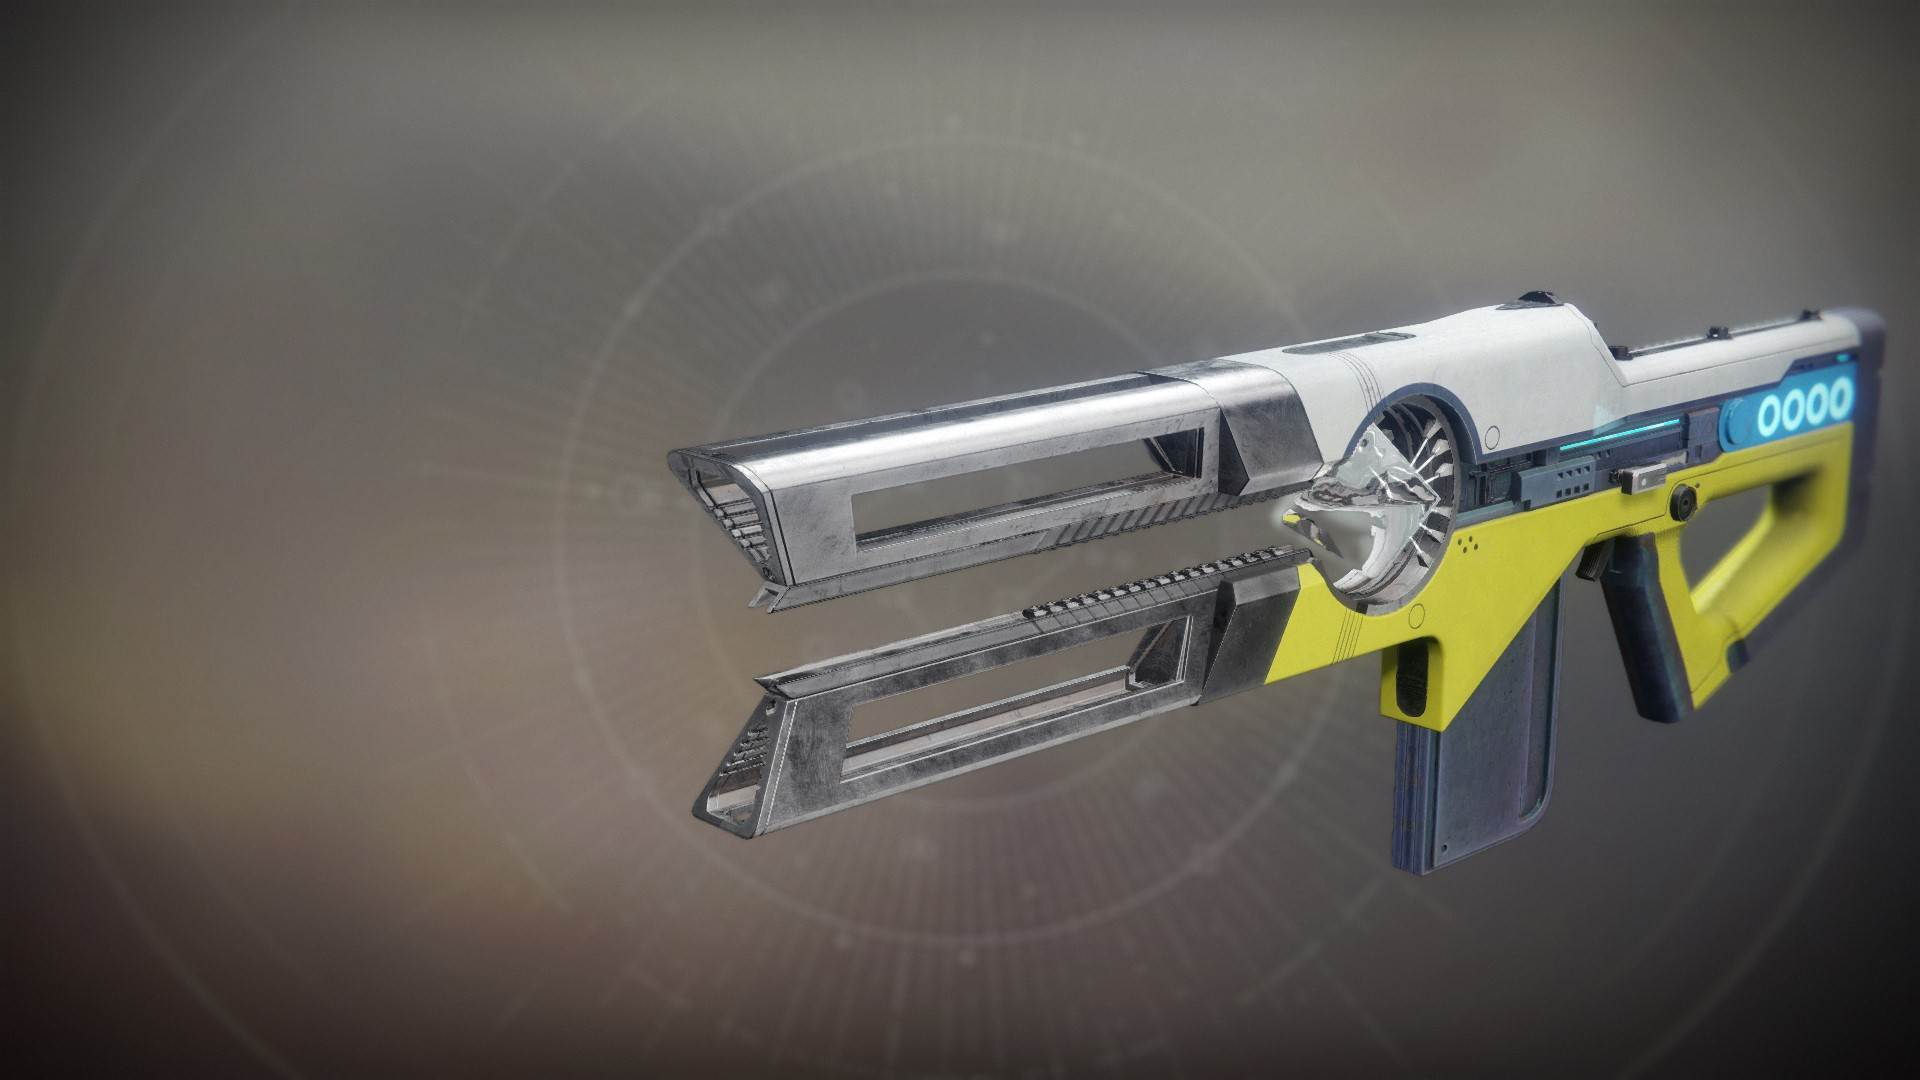 What Xur is selling in Destiny 2 - December 13, 2019